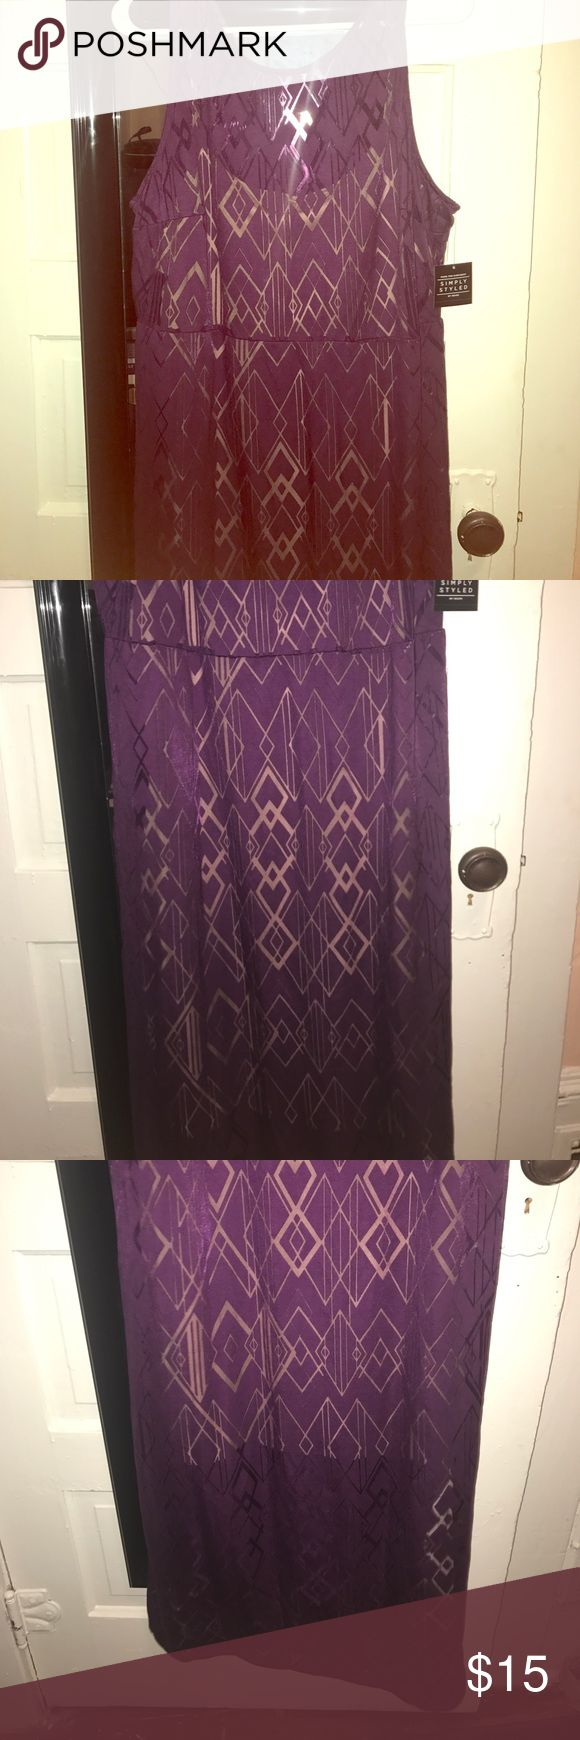 A two layer purple maxi dress A brand new with tags two layer purple maxi dress with slits on the sides and a zip up in the back of the dress Dresses Maxi